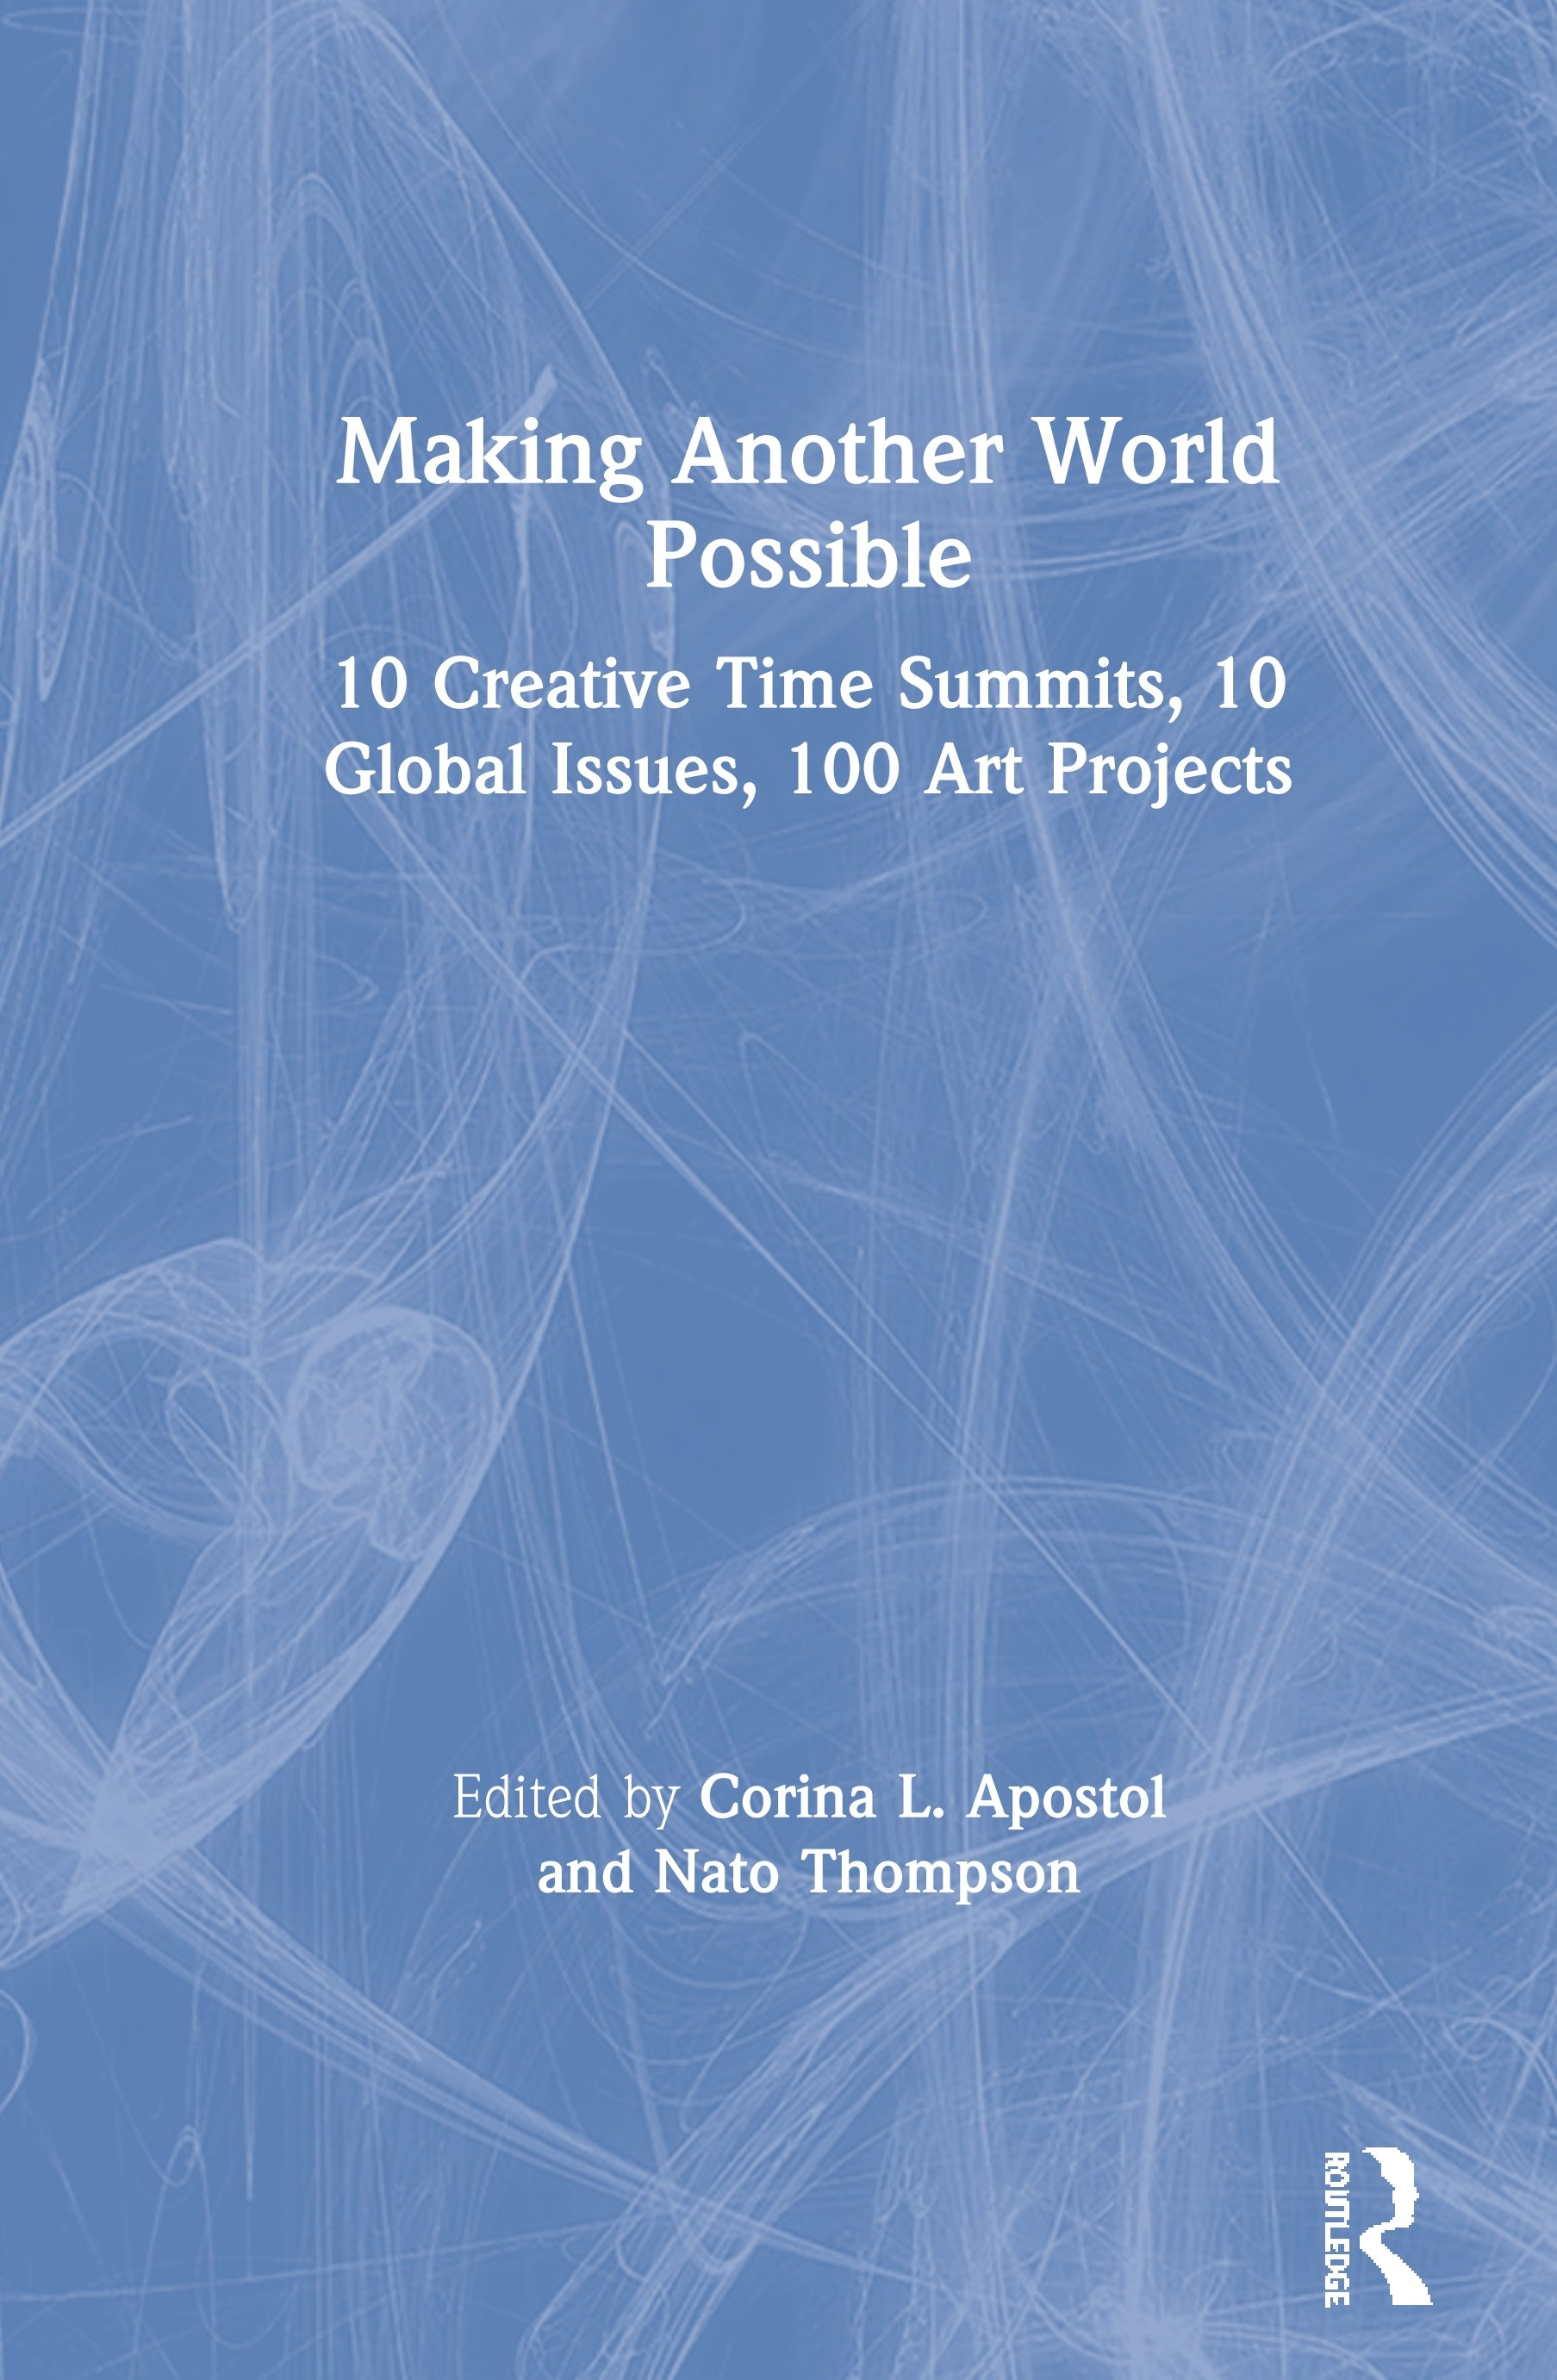 Making Another World Possible: 10 Creative Time Summits, 10 Global Issues, 100 Art Projects book cover